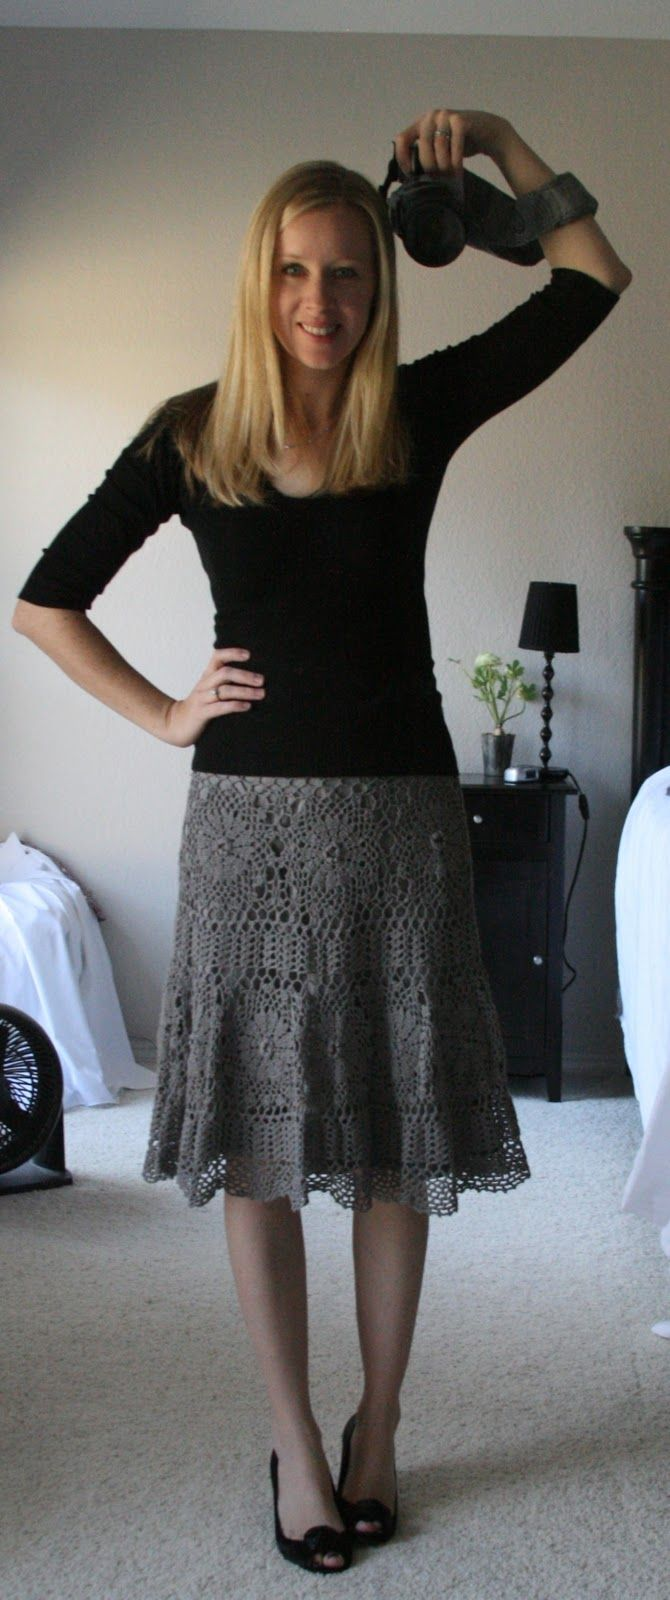 Crochet maxi skirt PATTERN, detailed TUTORIAL for every row + HQ charts…